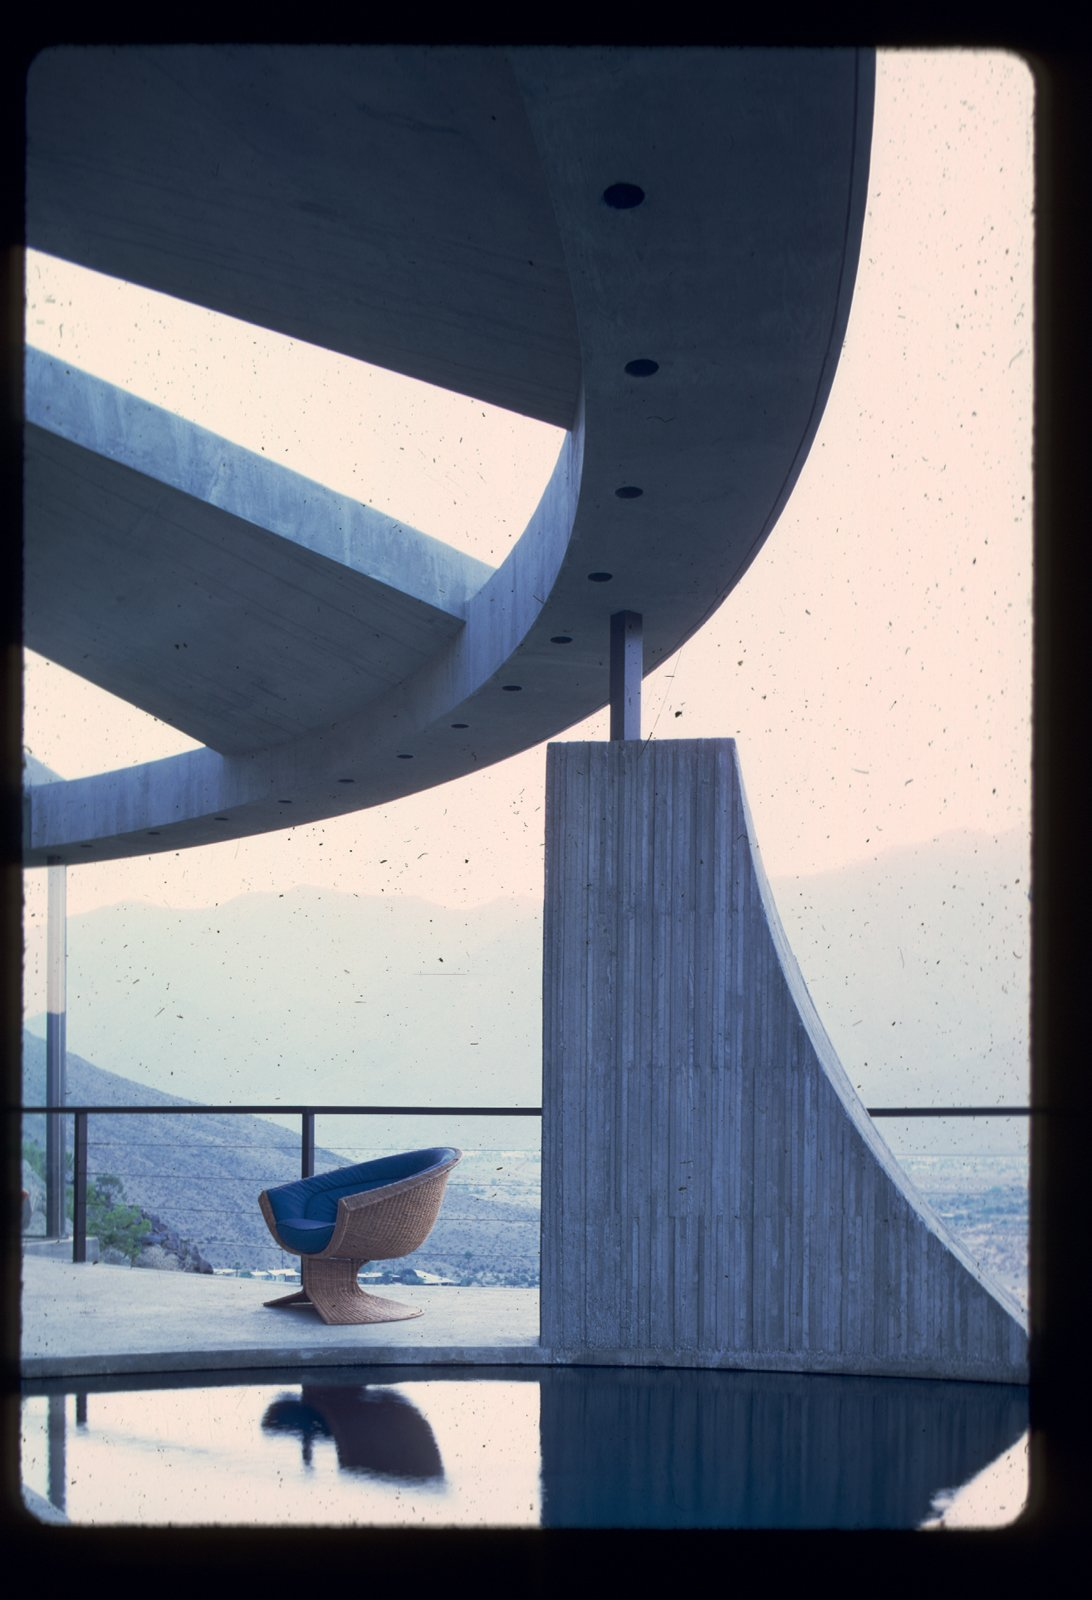 Photo by John Lautner.